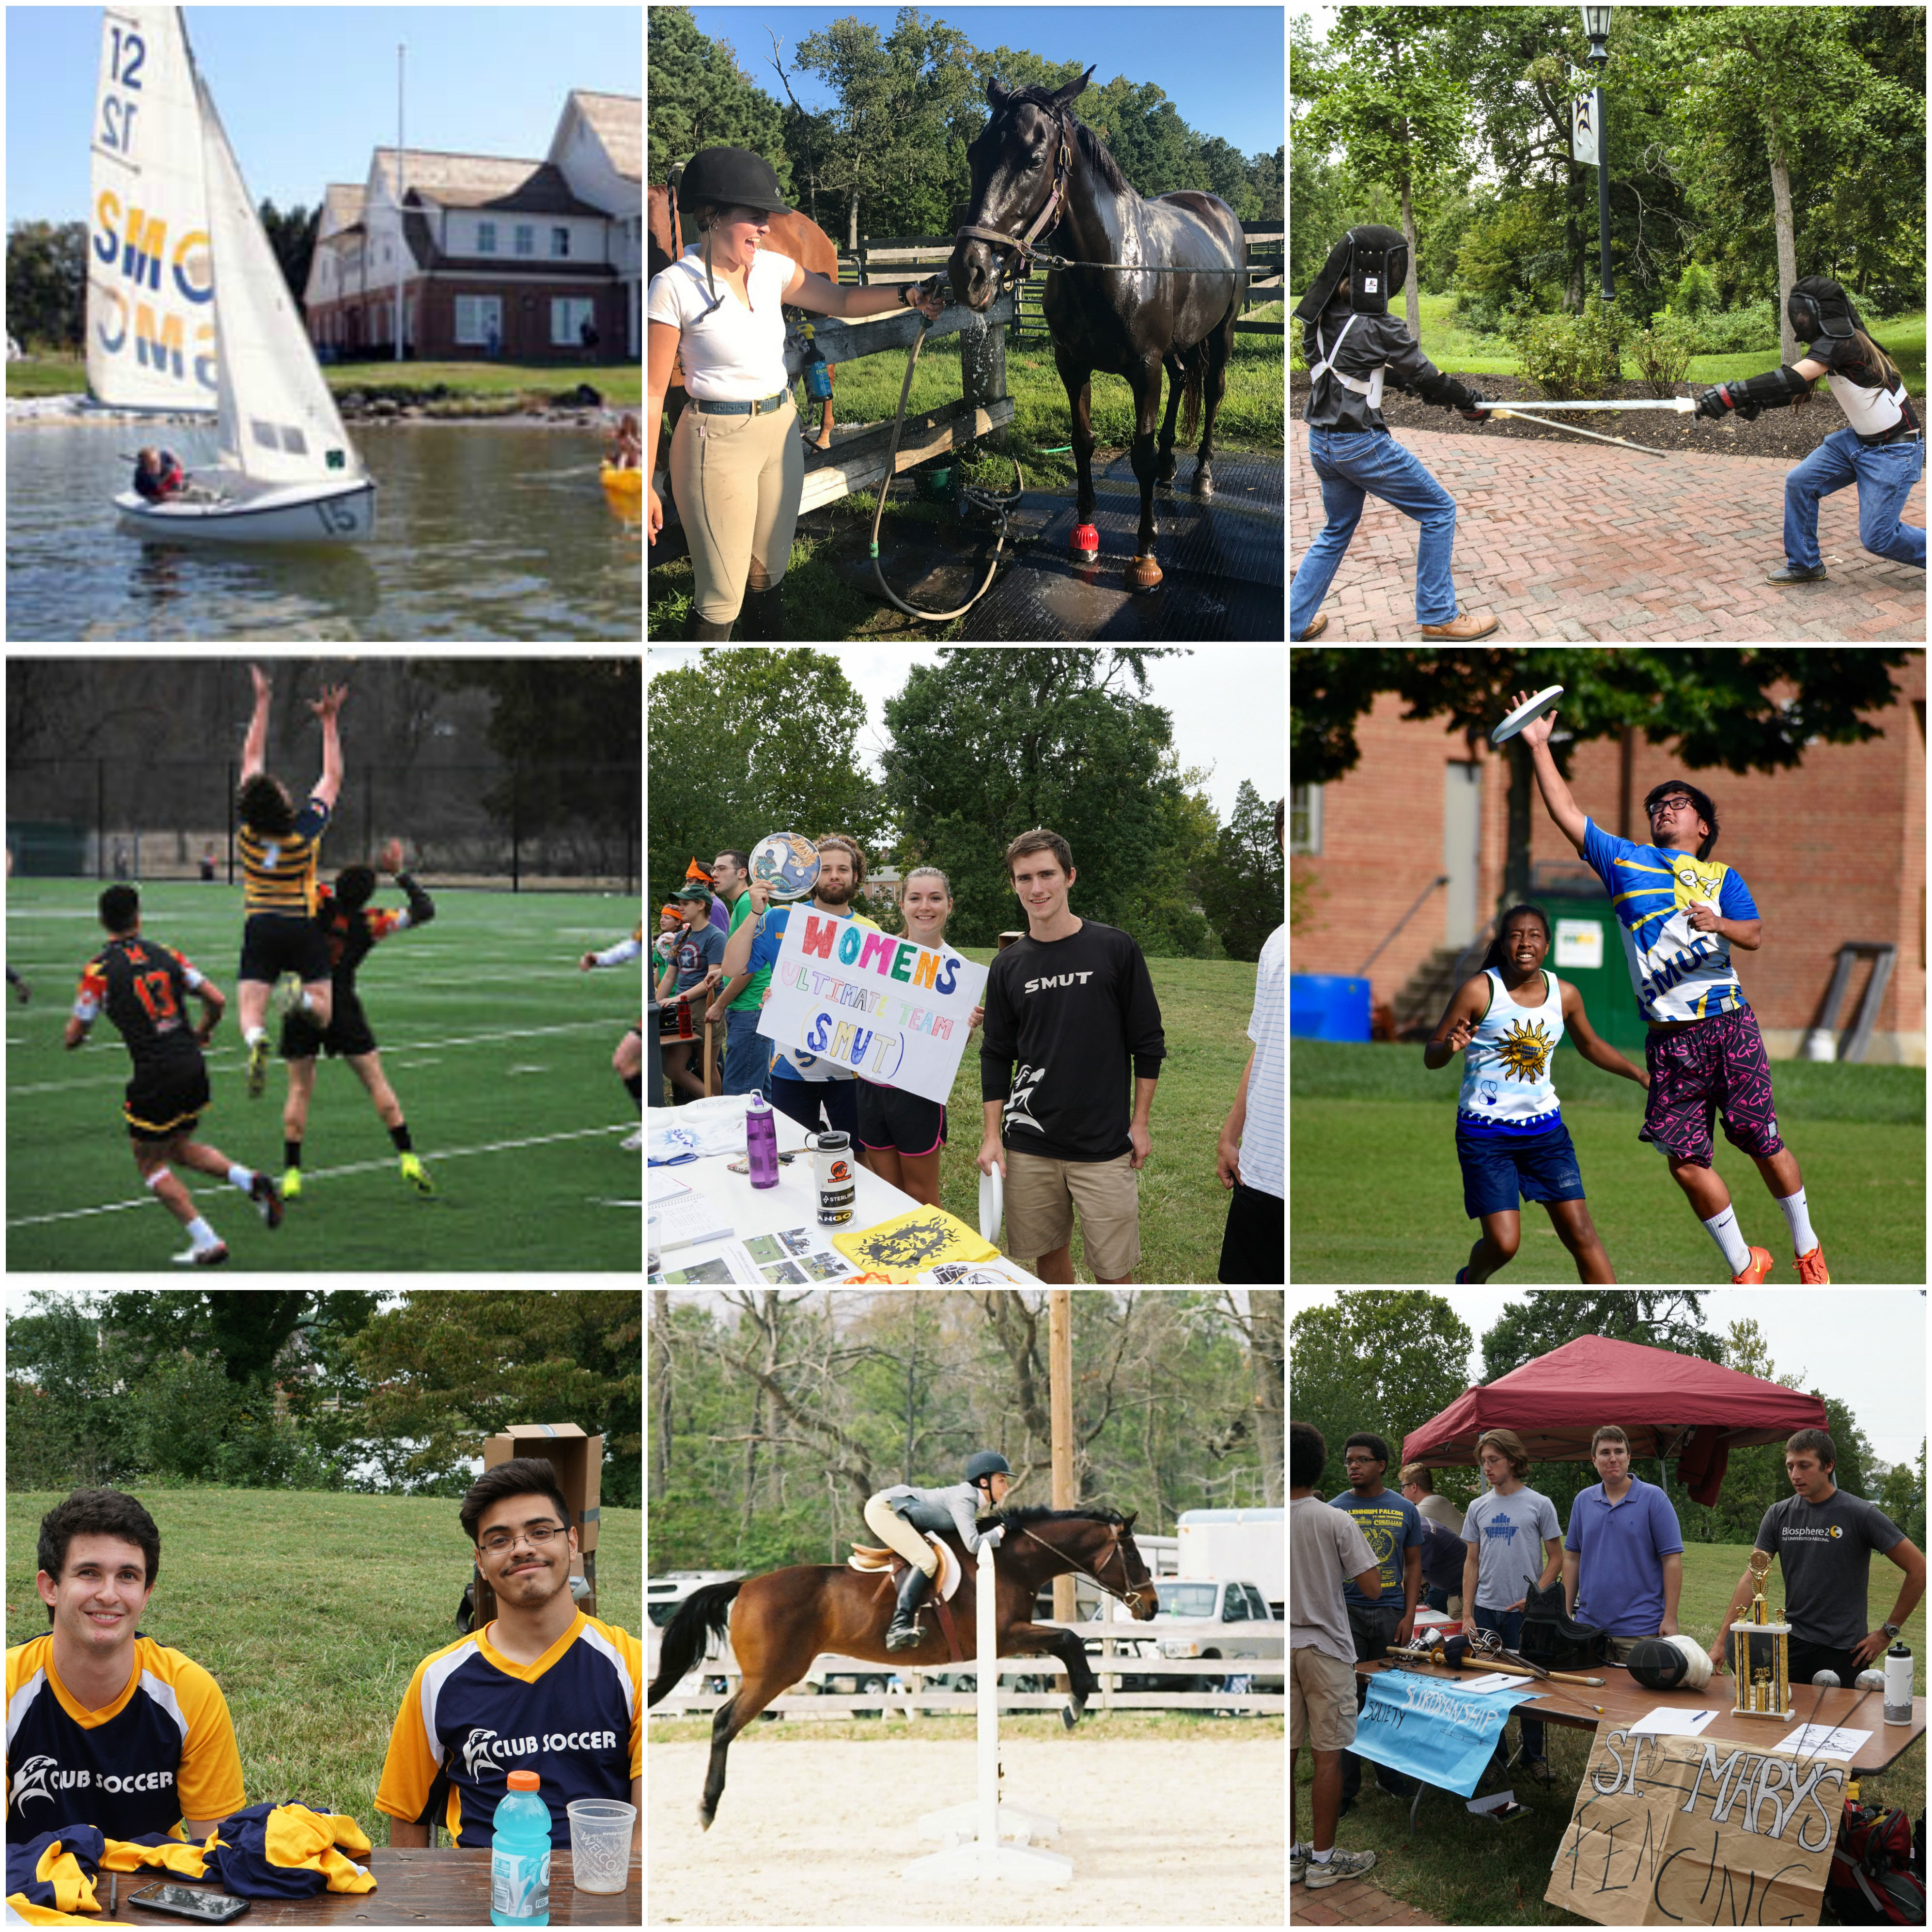 Collage of 9 square images representing some of the different club sports. Sailboat on the St. mary's river, Student riding a horse jumping over an obstacle, two students practicing fencing, male rugby player jumping in the air against his two opponents, students at club fair advertising the women's SMUT team, students playing Ultimate Frisbee, students at club fair looking for signups for men's club soccer, another student jumping with a horse for equestrian club, signup for fencing club.